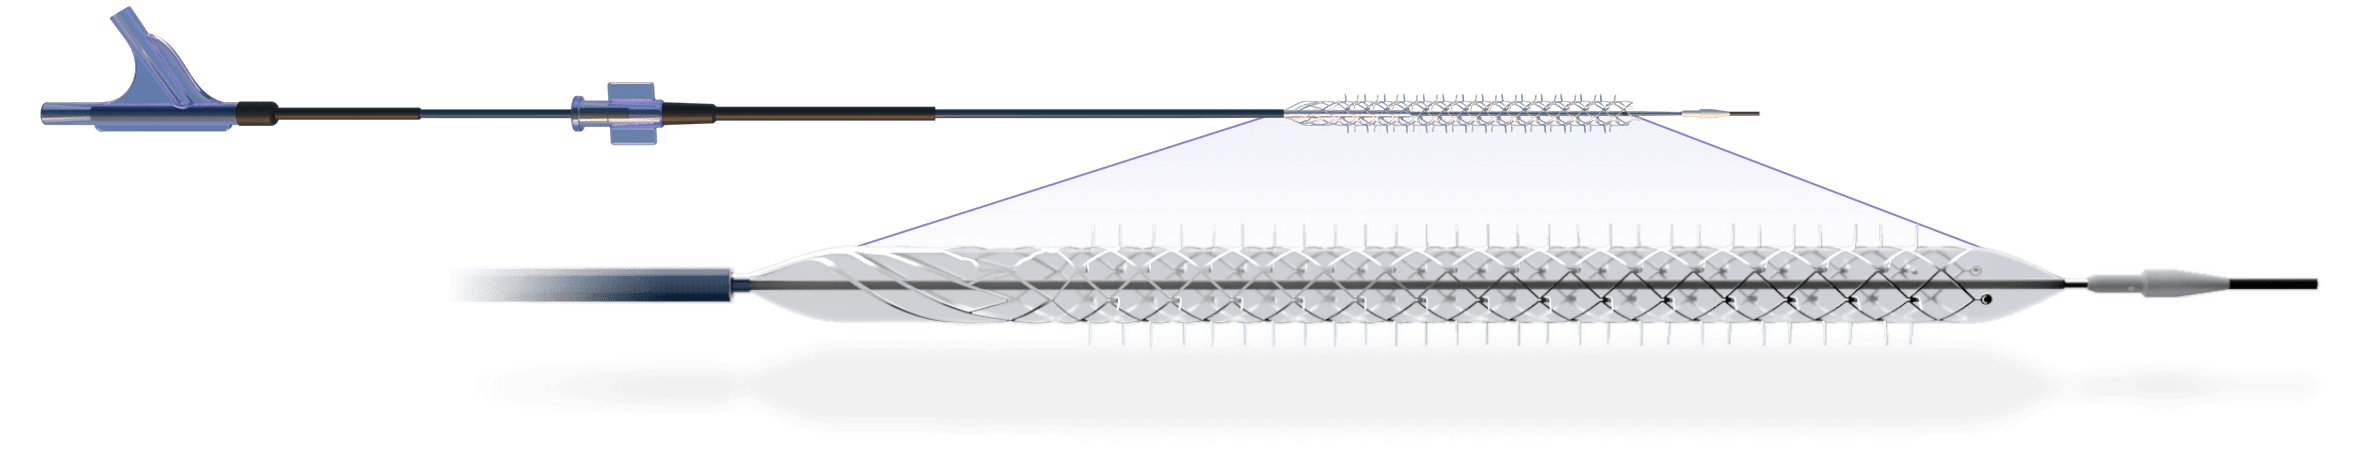 Temporary Spur stent system (Reflow Medical, Inc.)